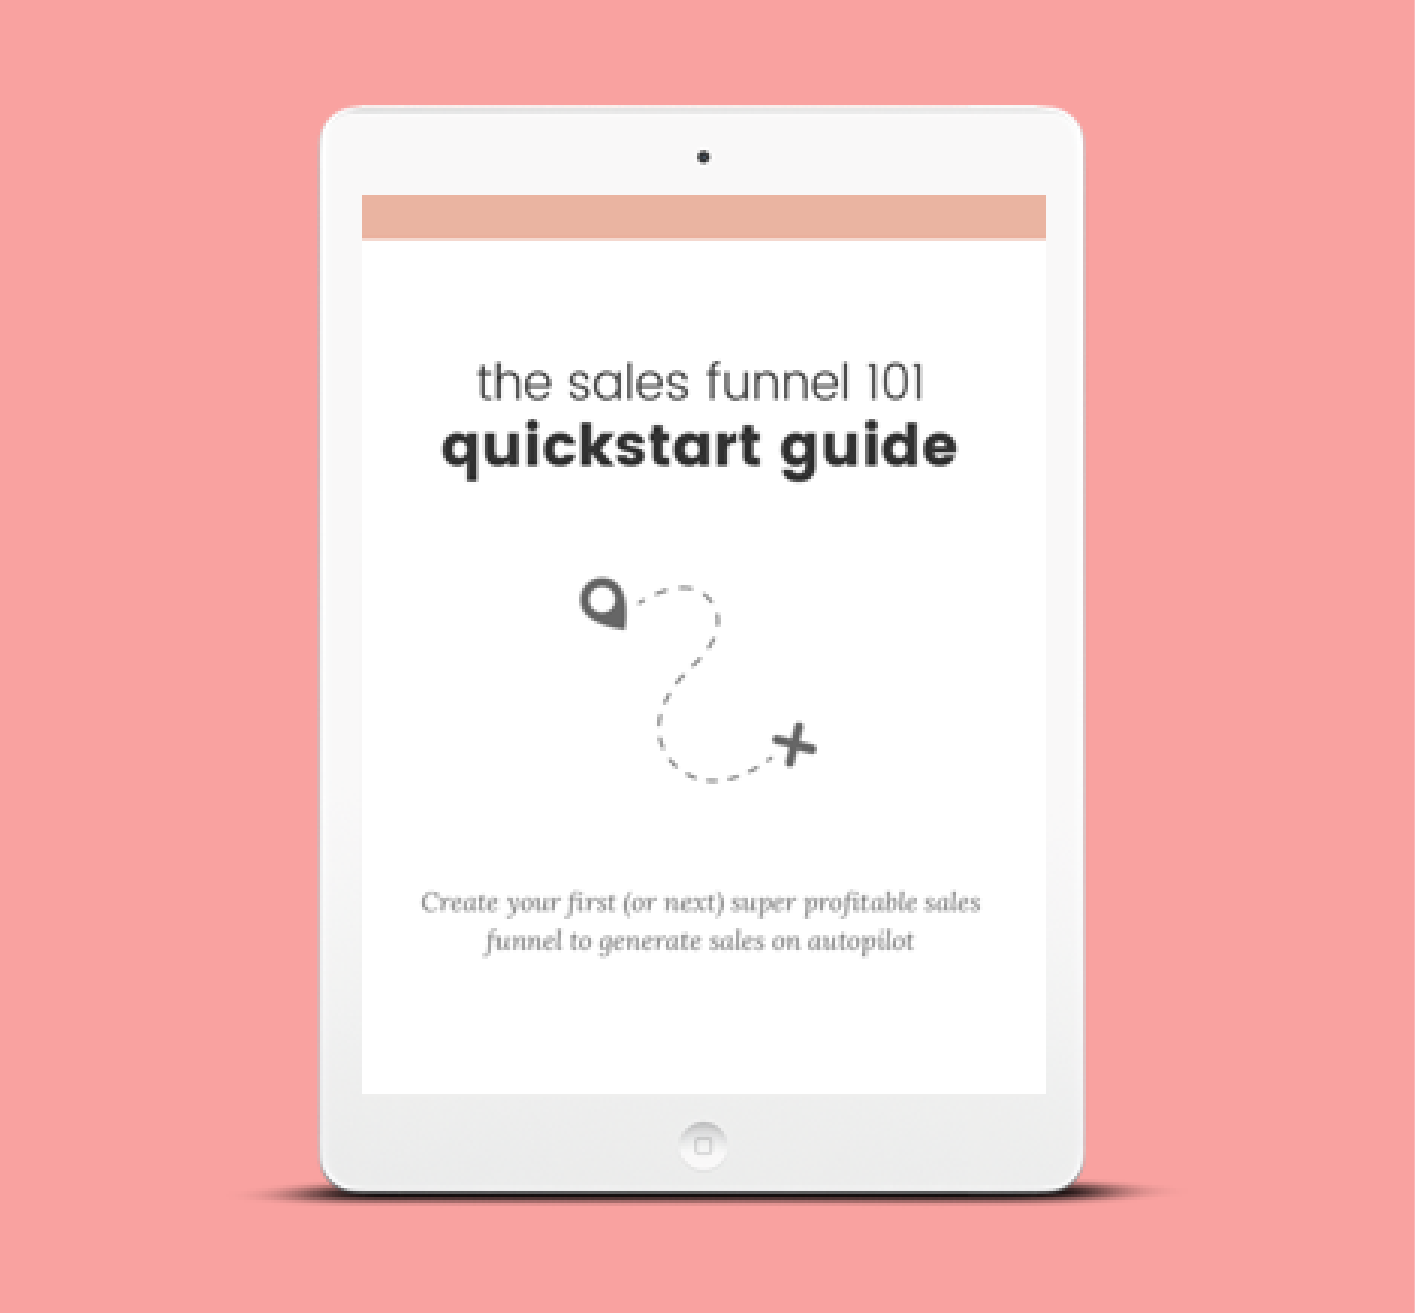 The Sales Funnel 101 Quickstart Guide - Create your first (or next!) wildly profitable sales funnel and make sales in your business every day on autopilot.